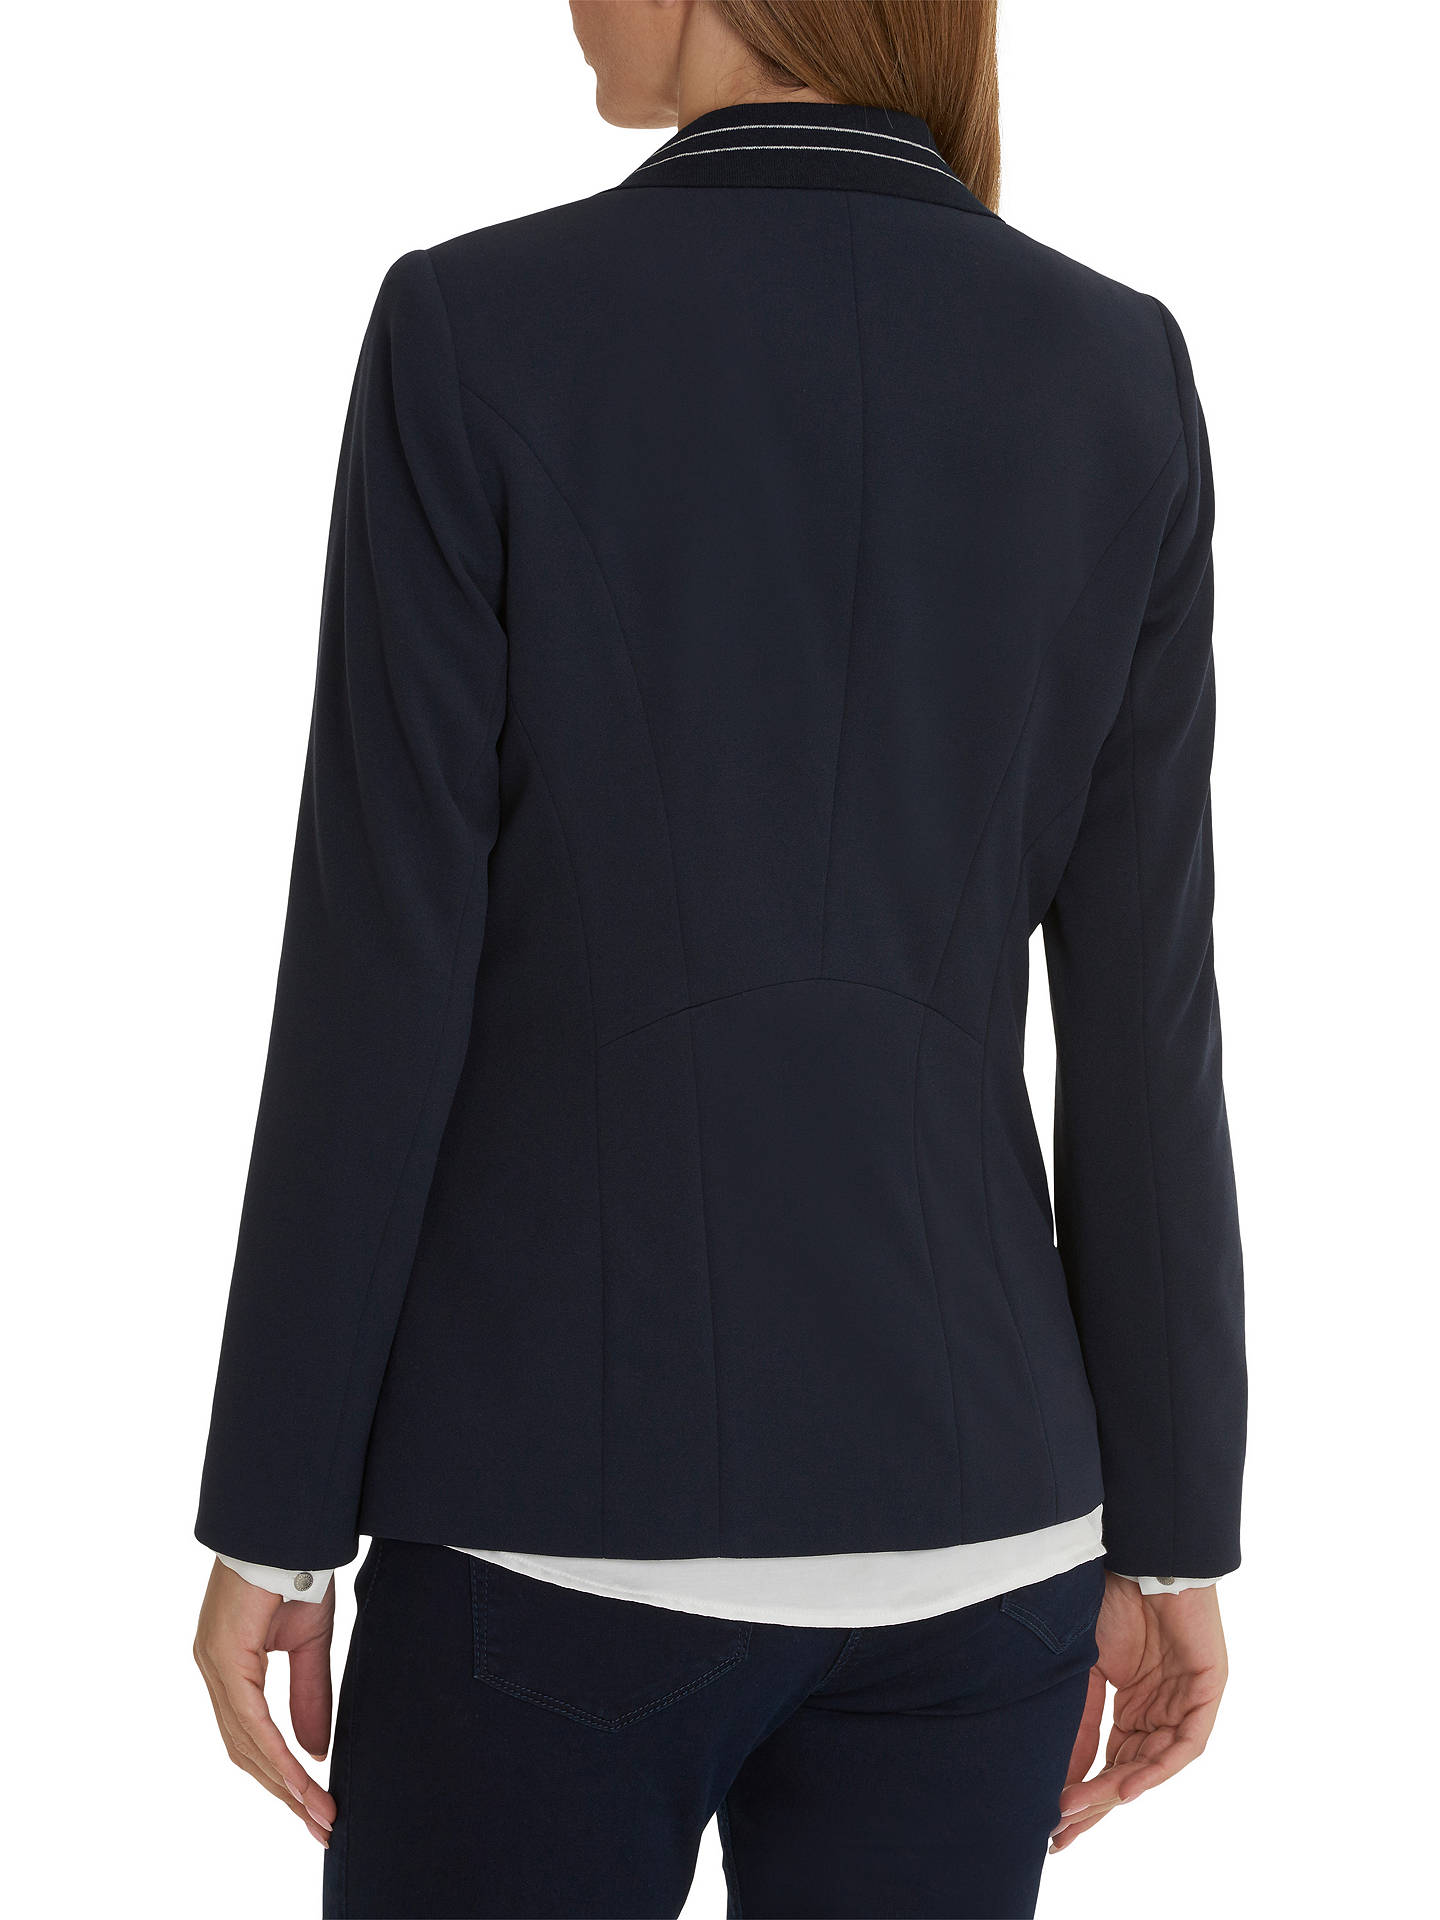 BuyBetty Barclay Sporty Tailored Blazer, Dark Sky, 10 Online at johnlewis.com